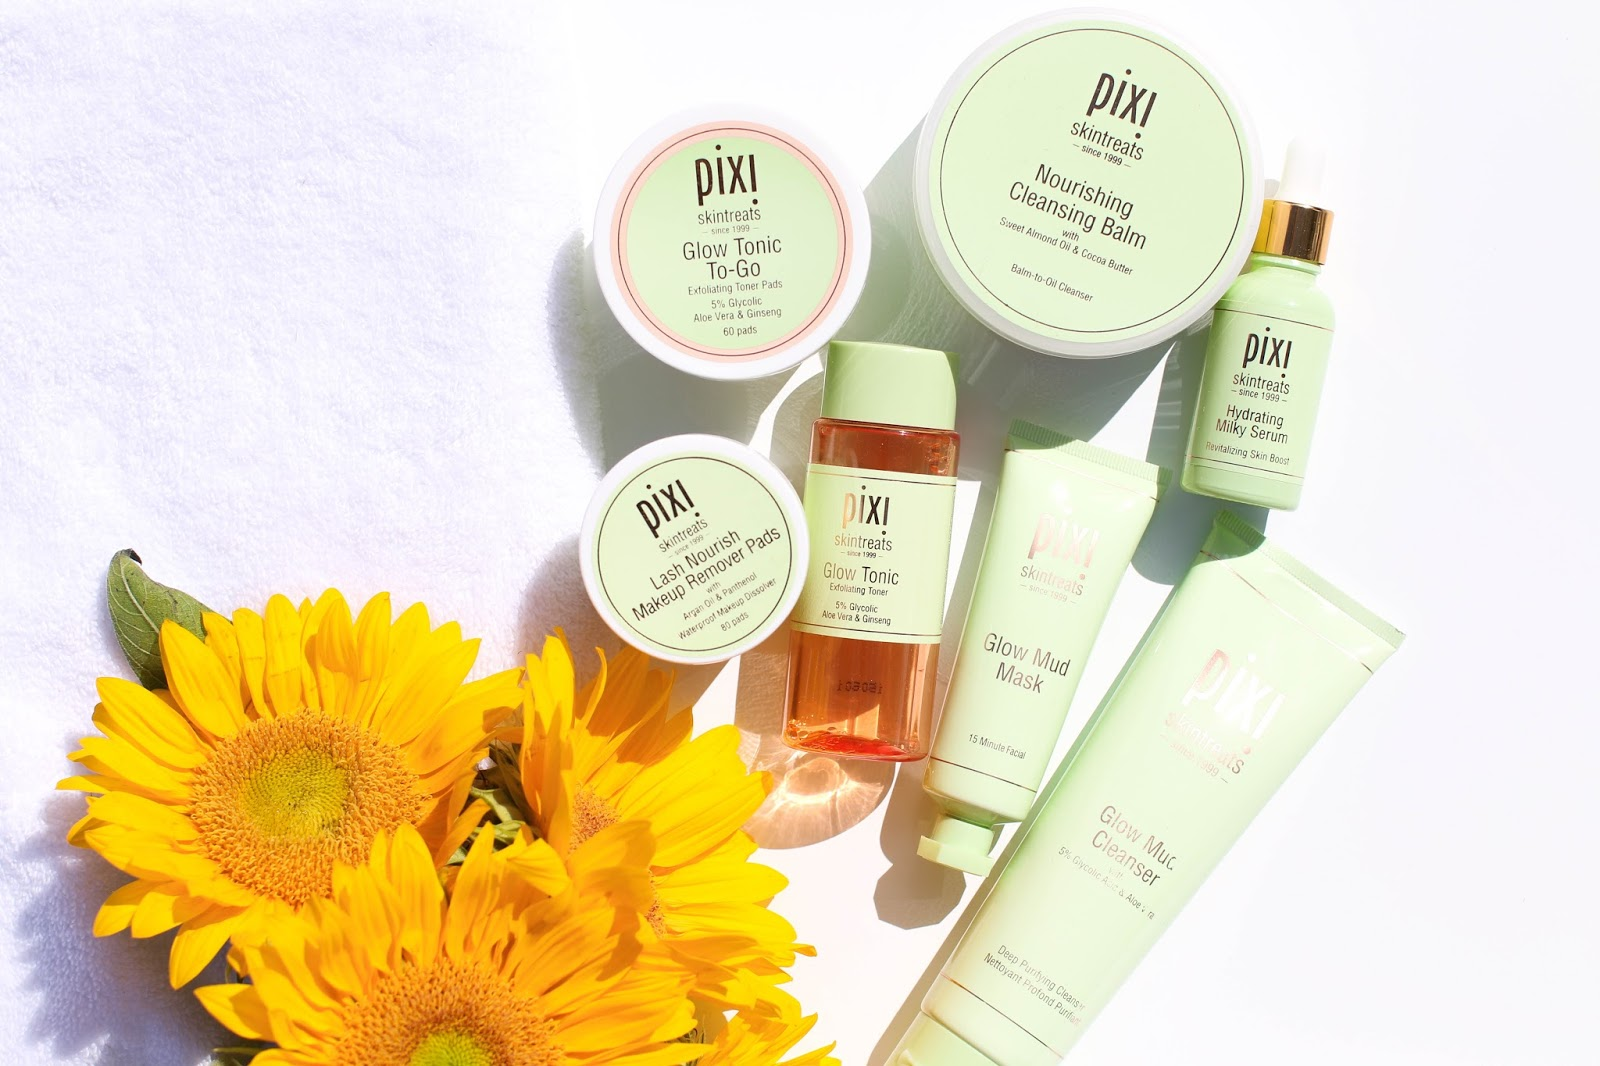 Pixi skincare review